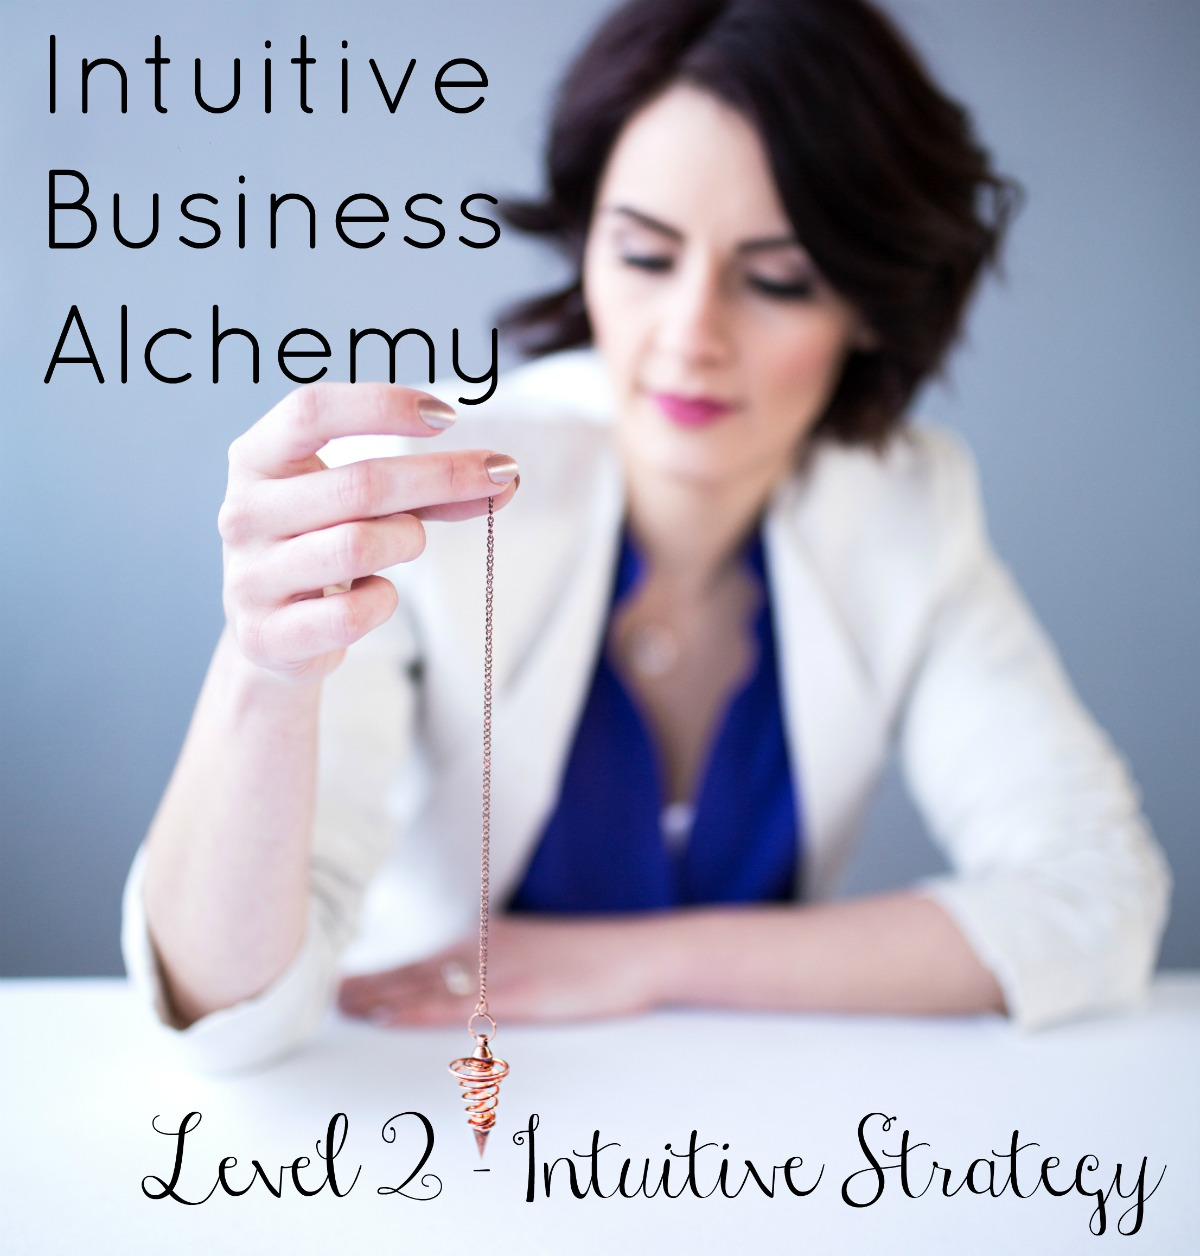 intuitive business strategy